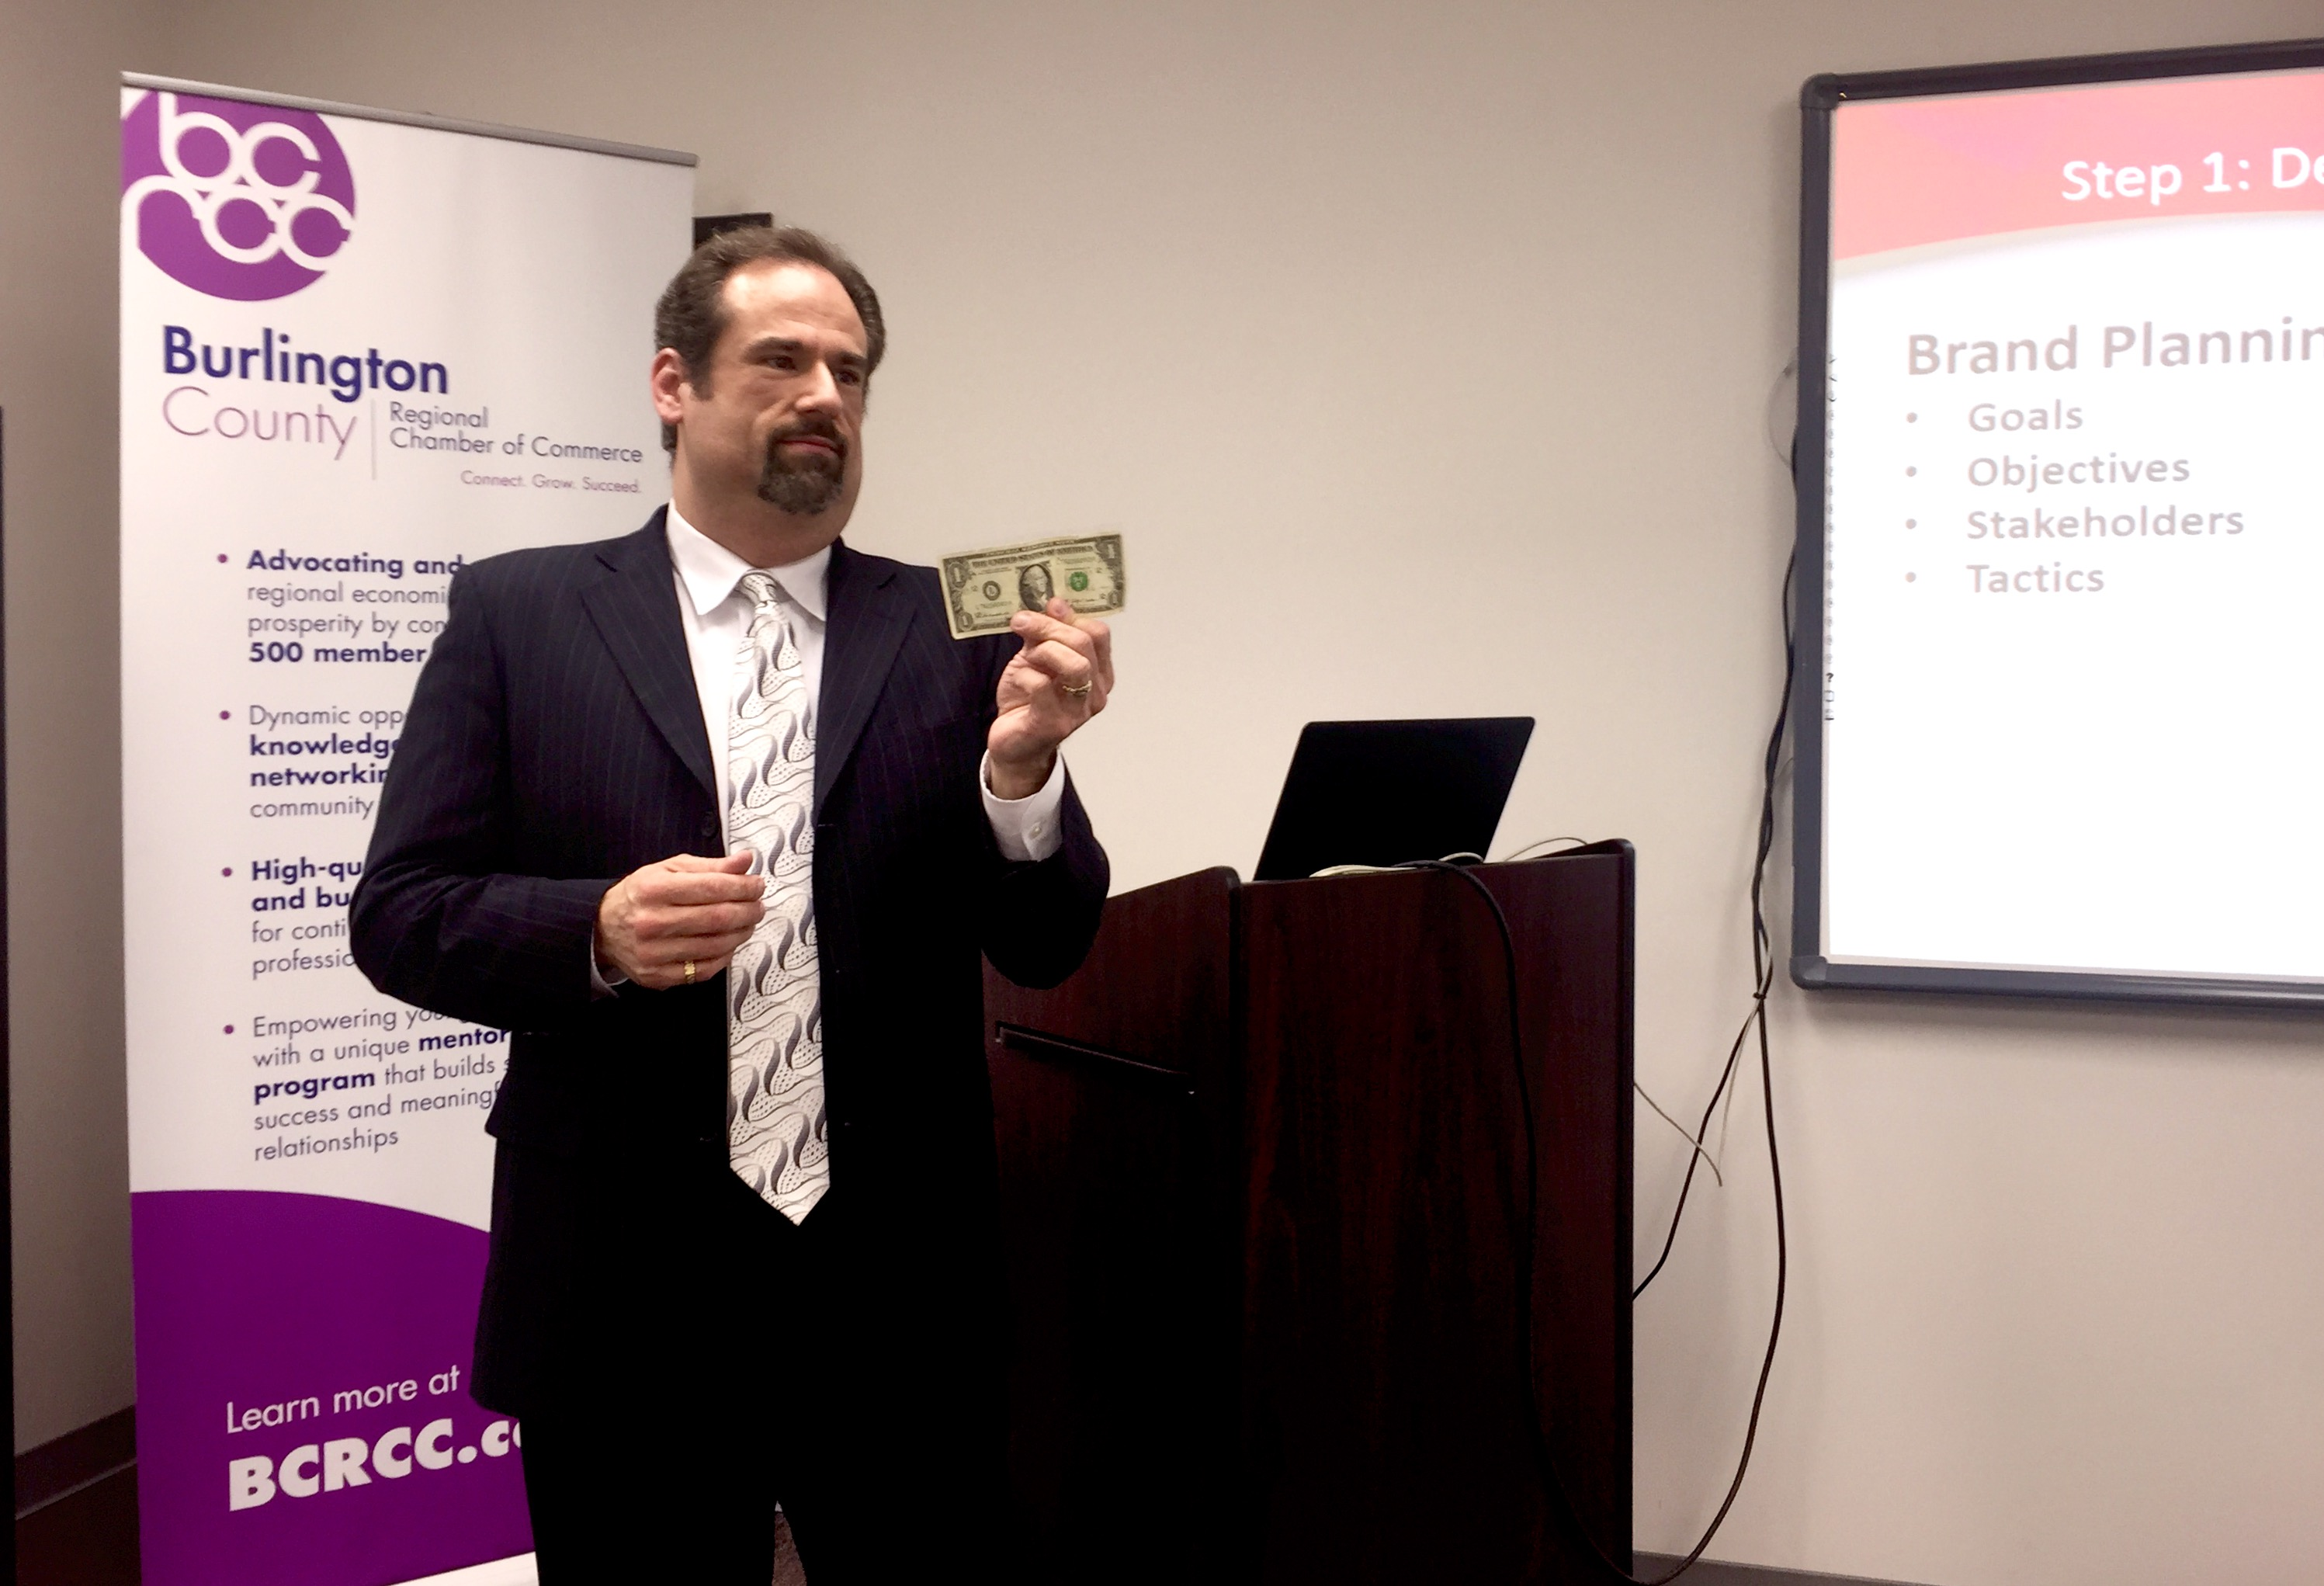 Kenneth Hitchner, public relations and social media director at Creative Marketing Alliance, holds up a dollar bill as an example of branding.